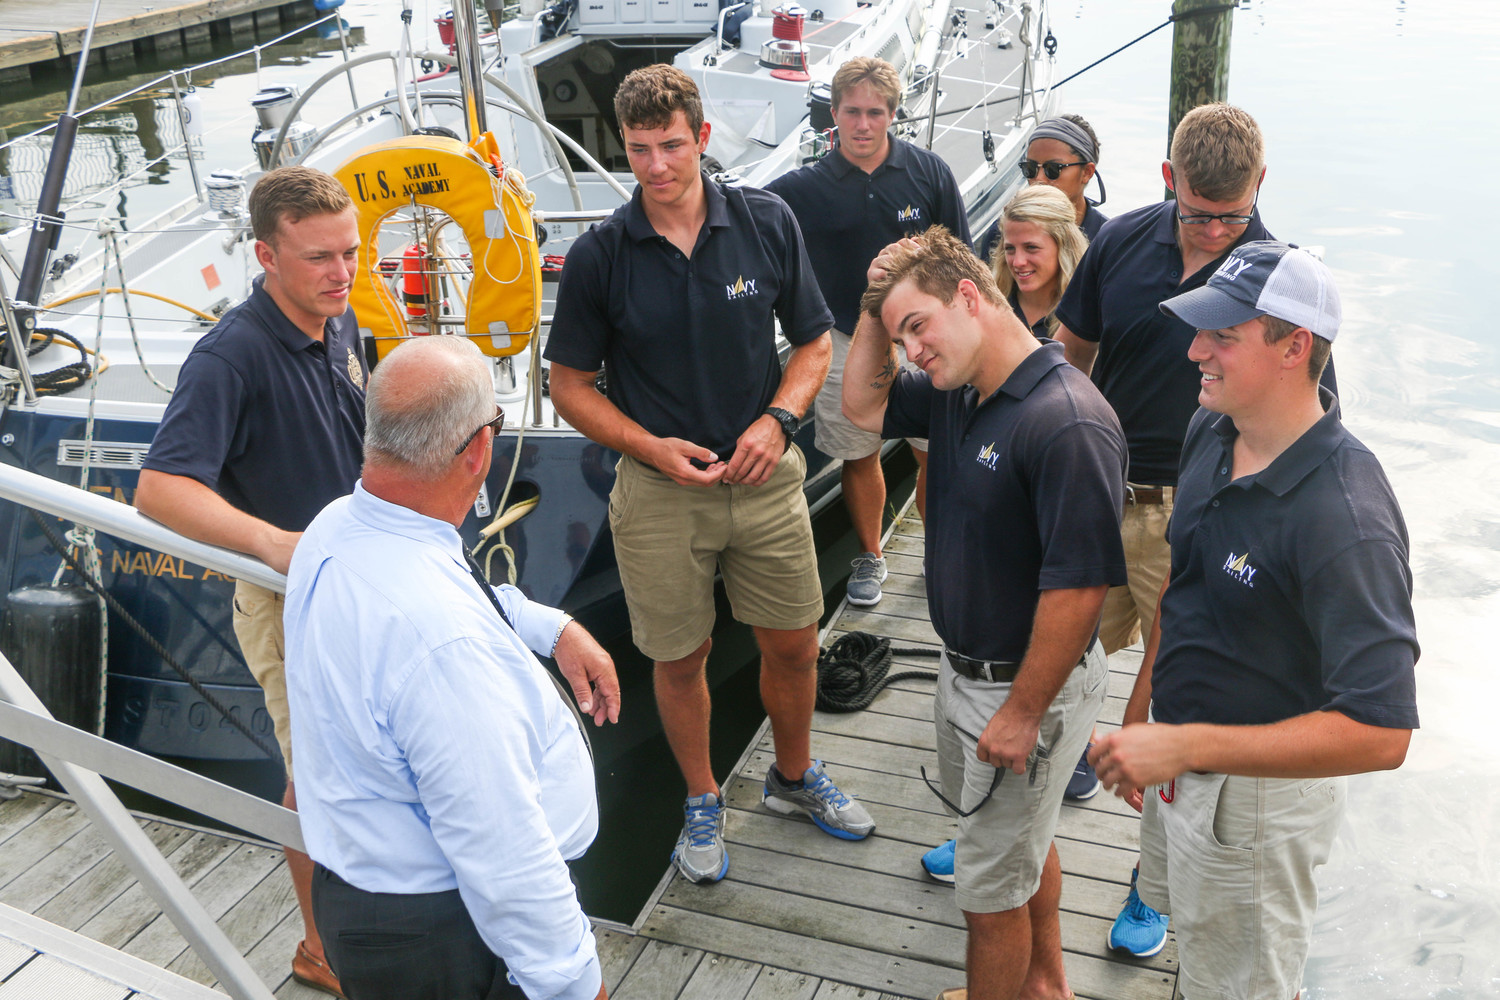 Freeport Mayor Robert Kennedy greeted the visiting Midshipmen and recommended all the places they could visit in Freeport during their four-day visit.